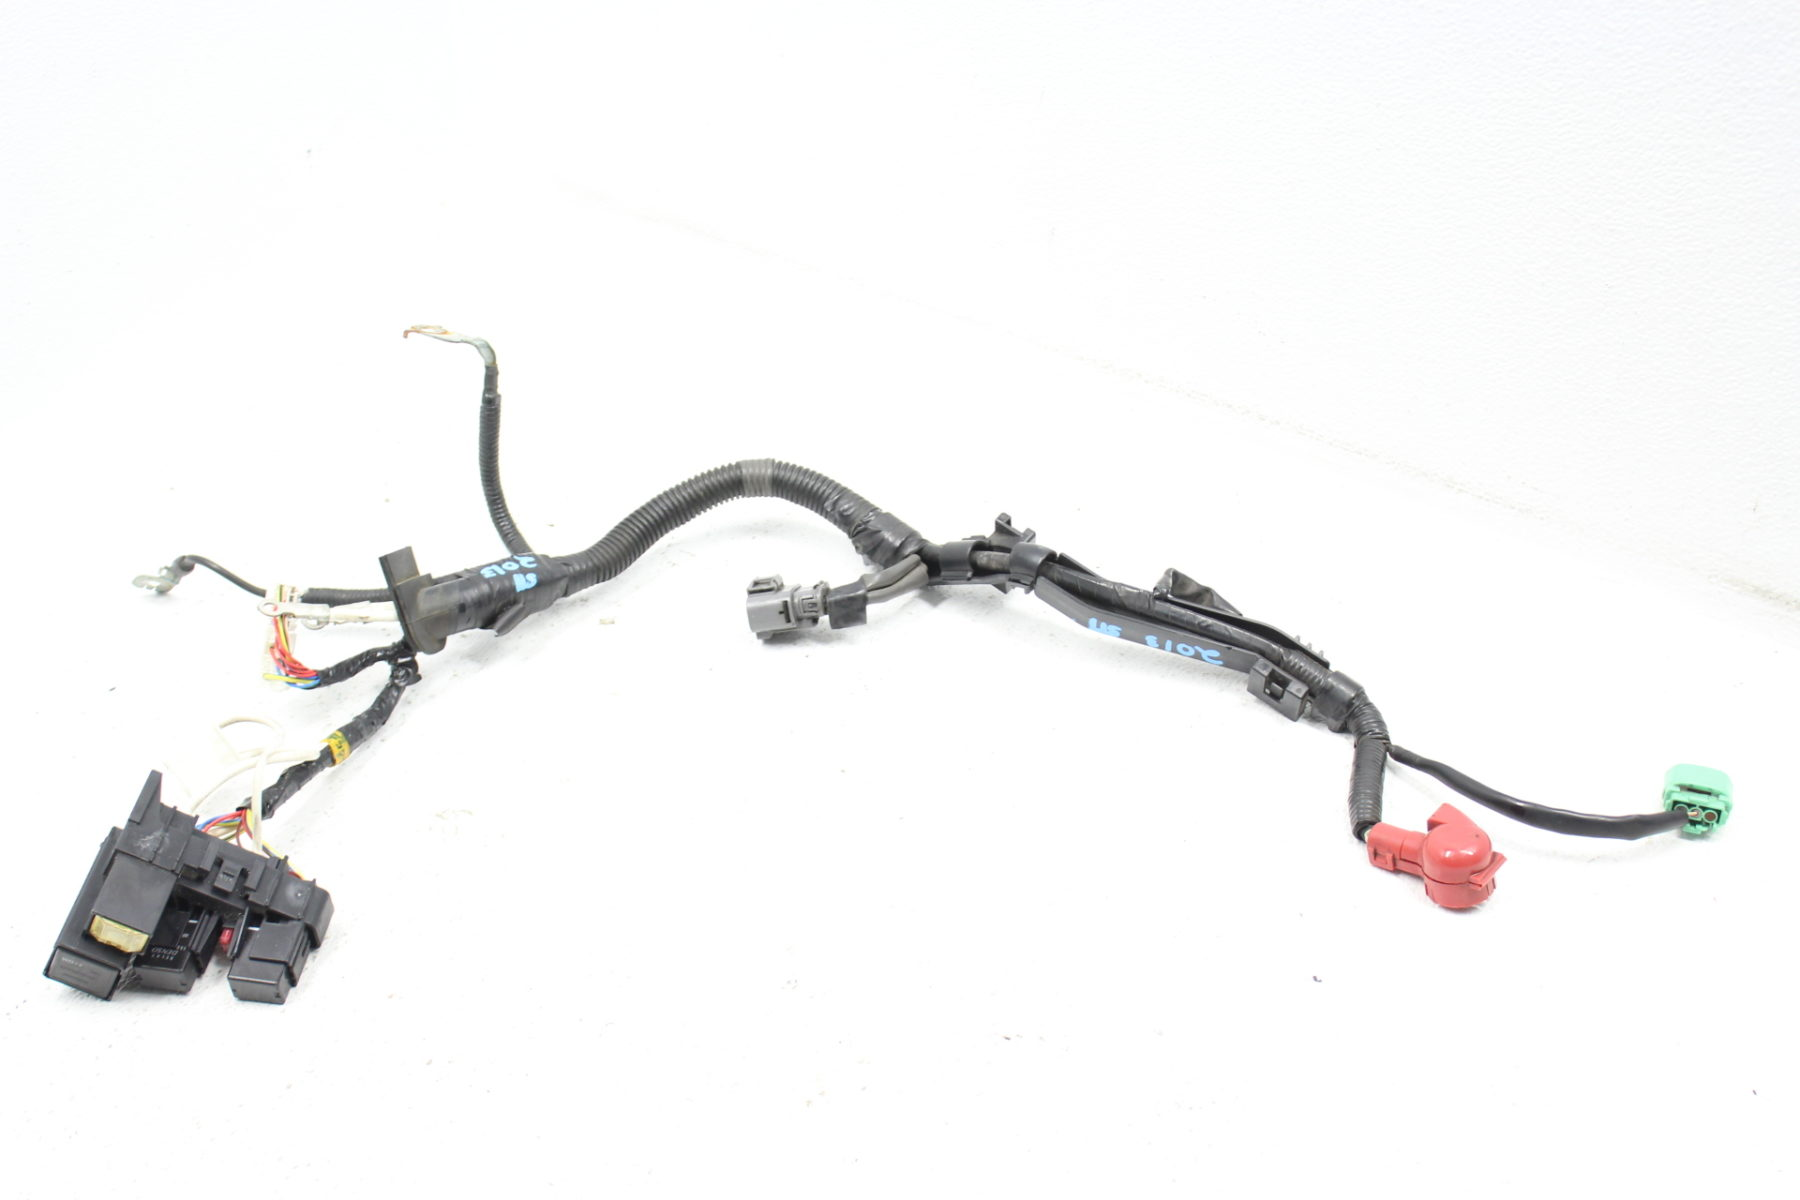 Subaru Wrx Sti Battery Main Wire Harness Wiring